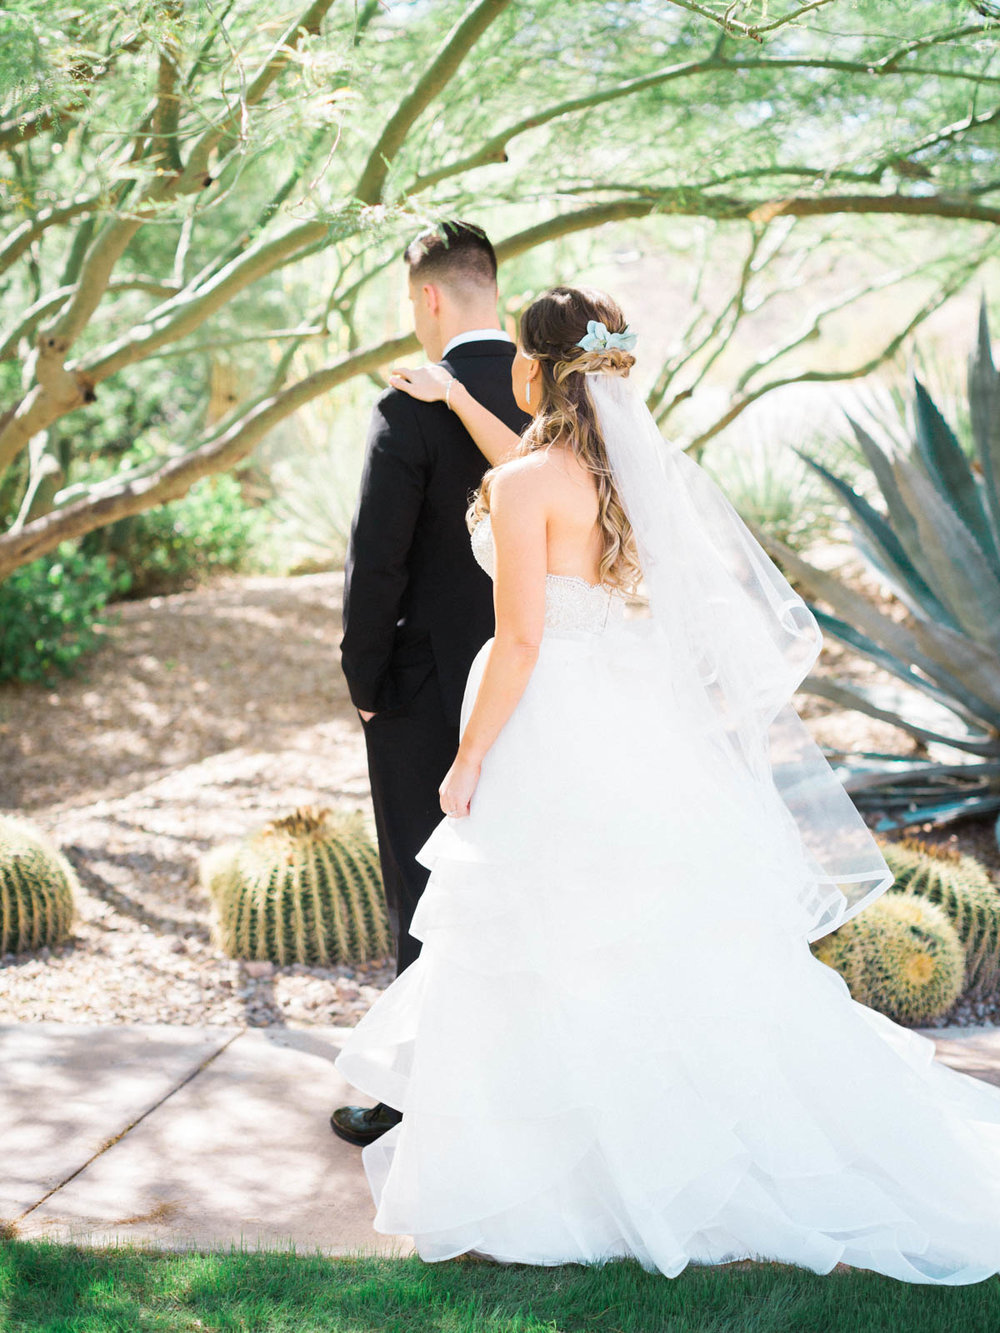 First Look captured by Tucson Wedding Photographers Betsy & John